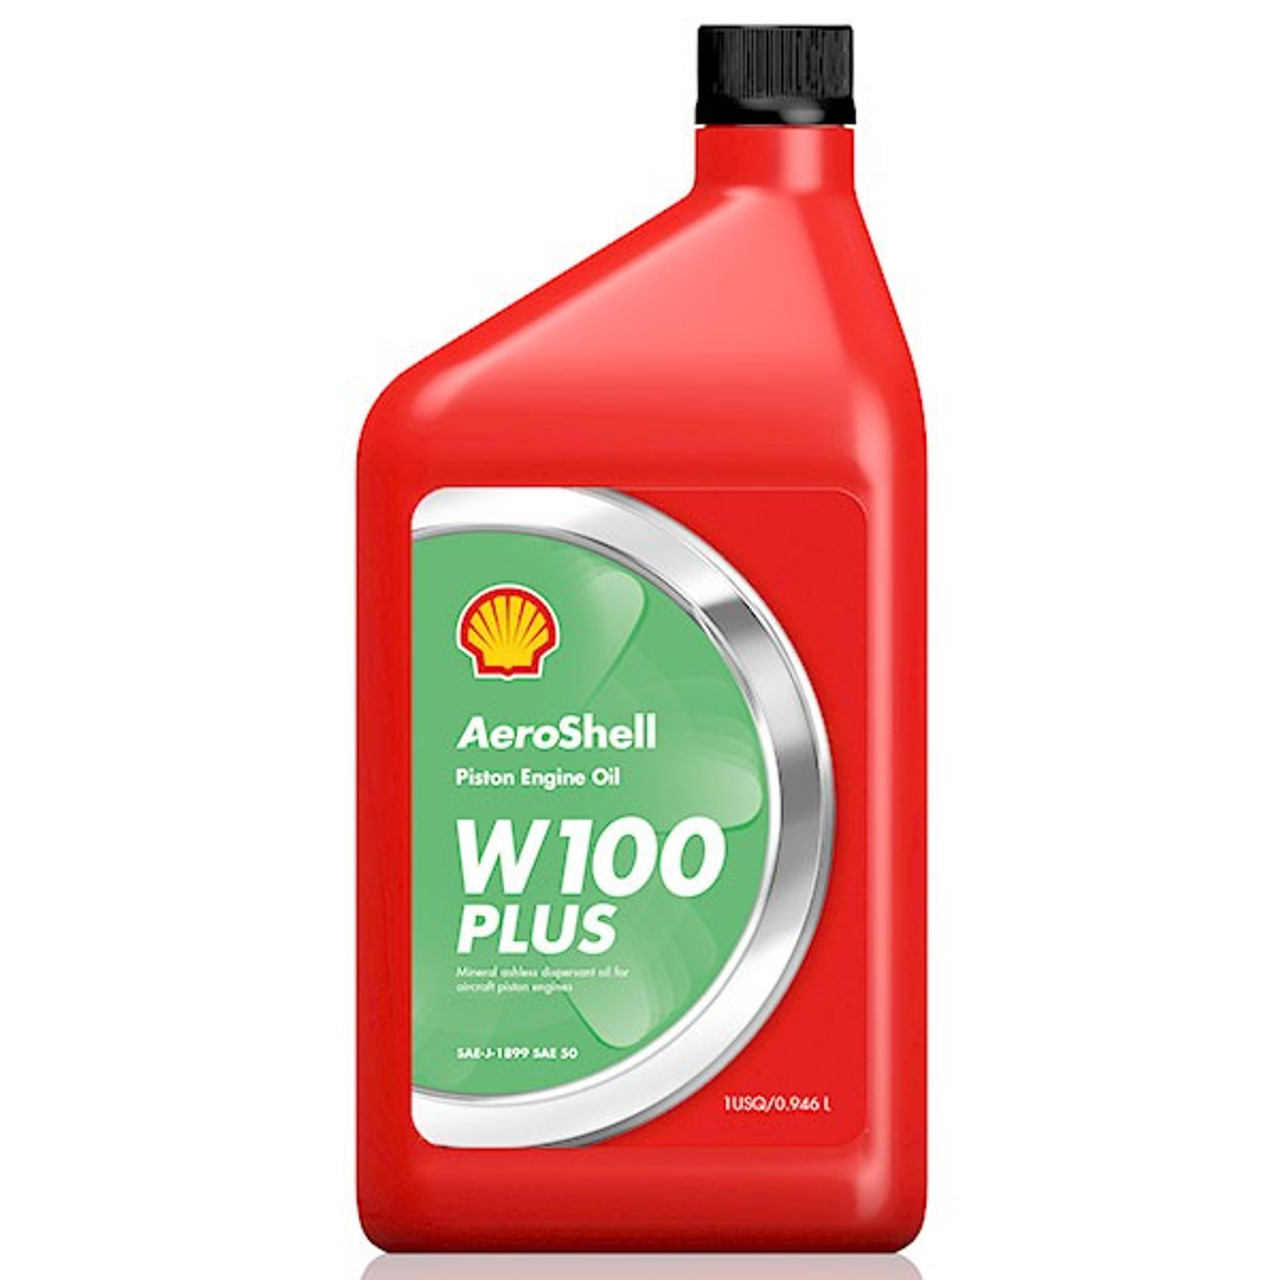 AeroShell W100 Plus SAE 50 Aircraft Oil - 12 Quart Case